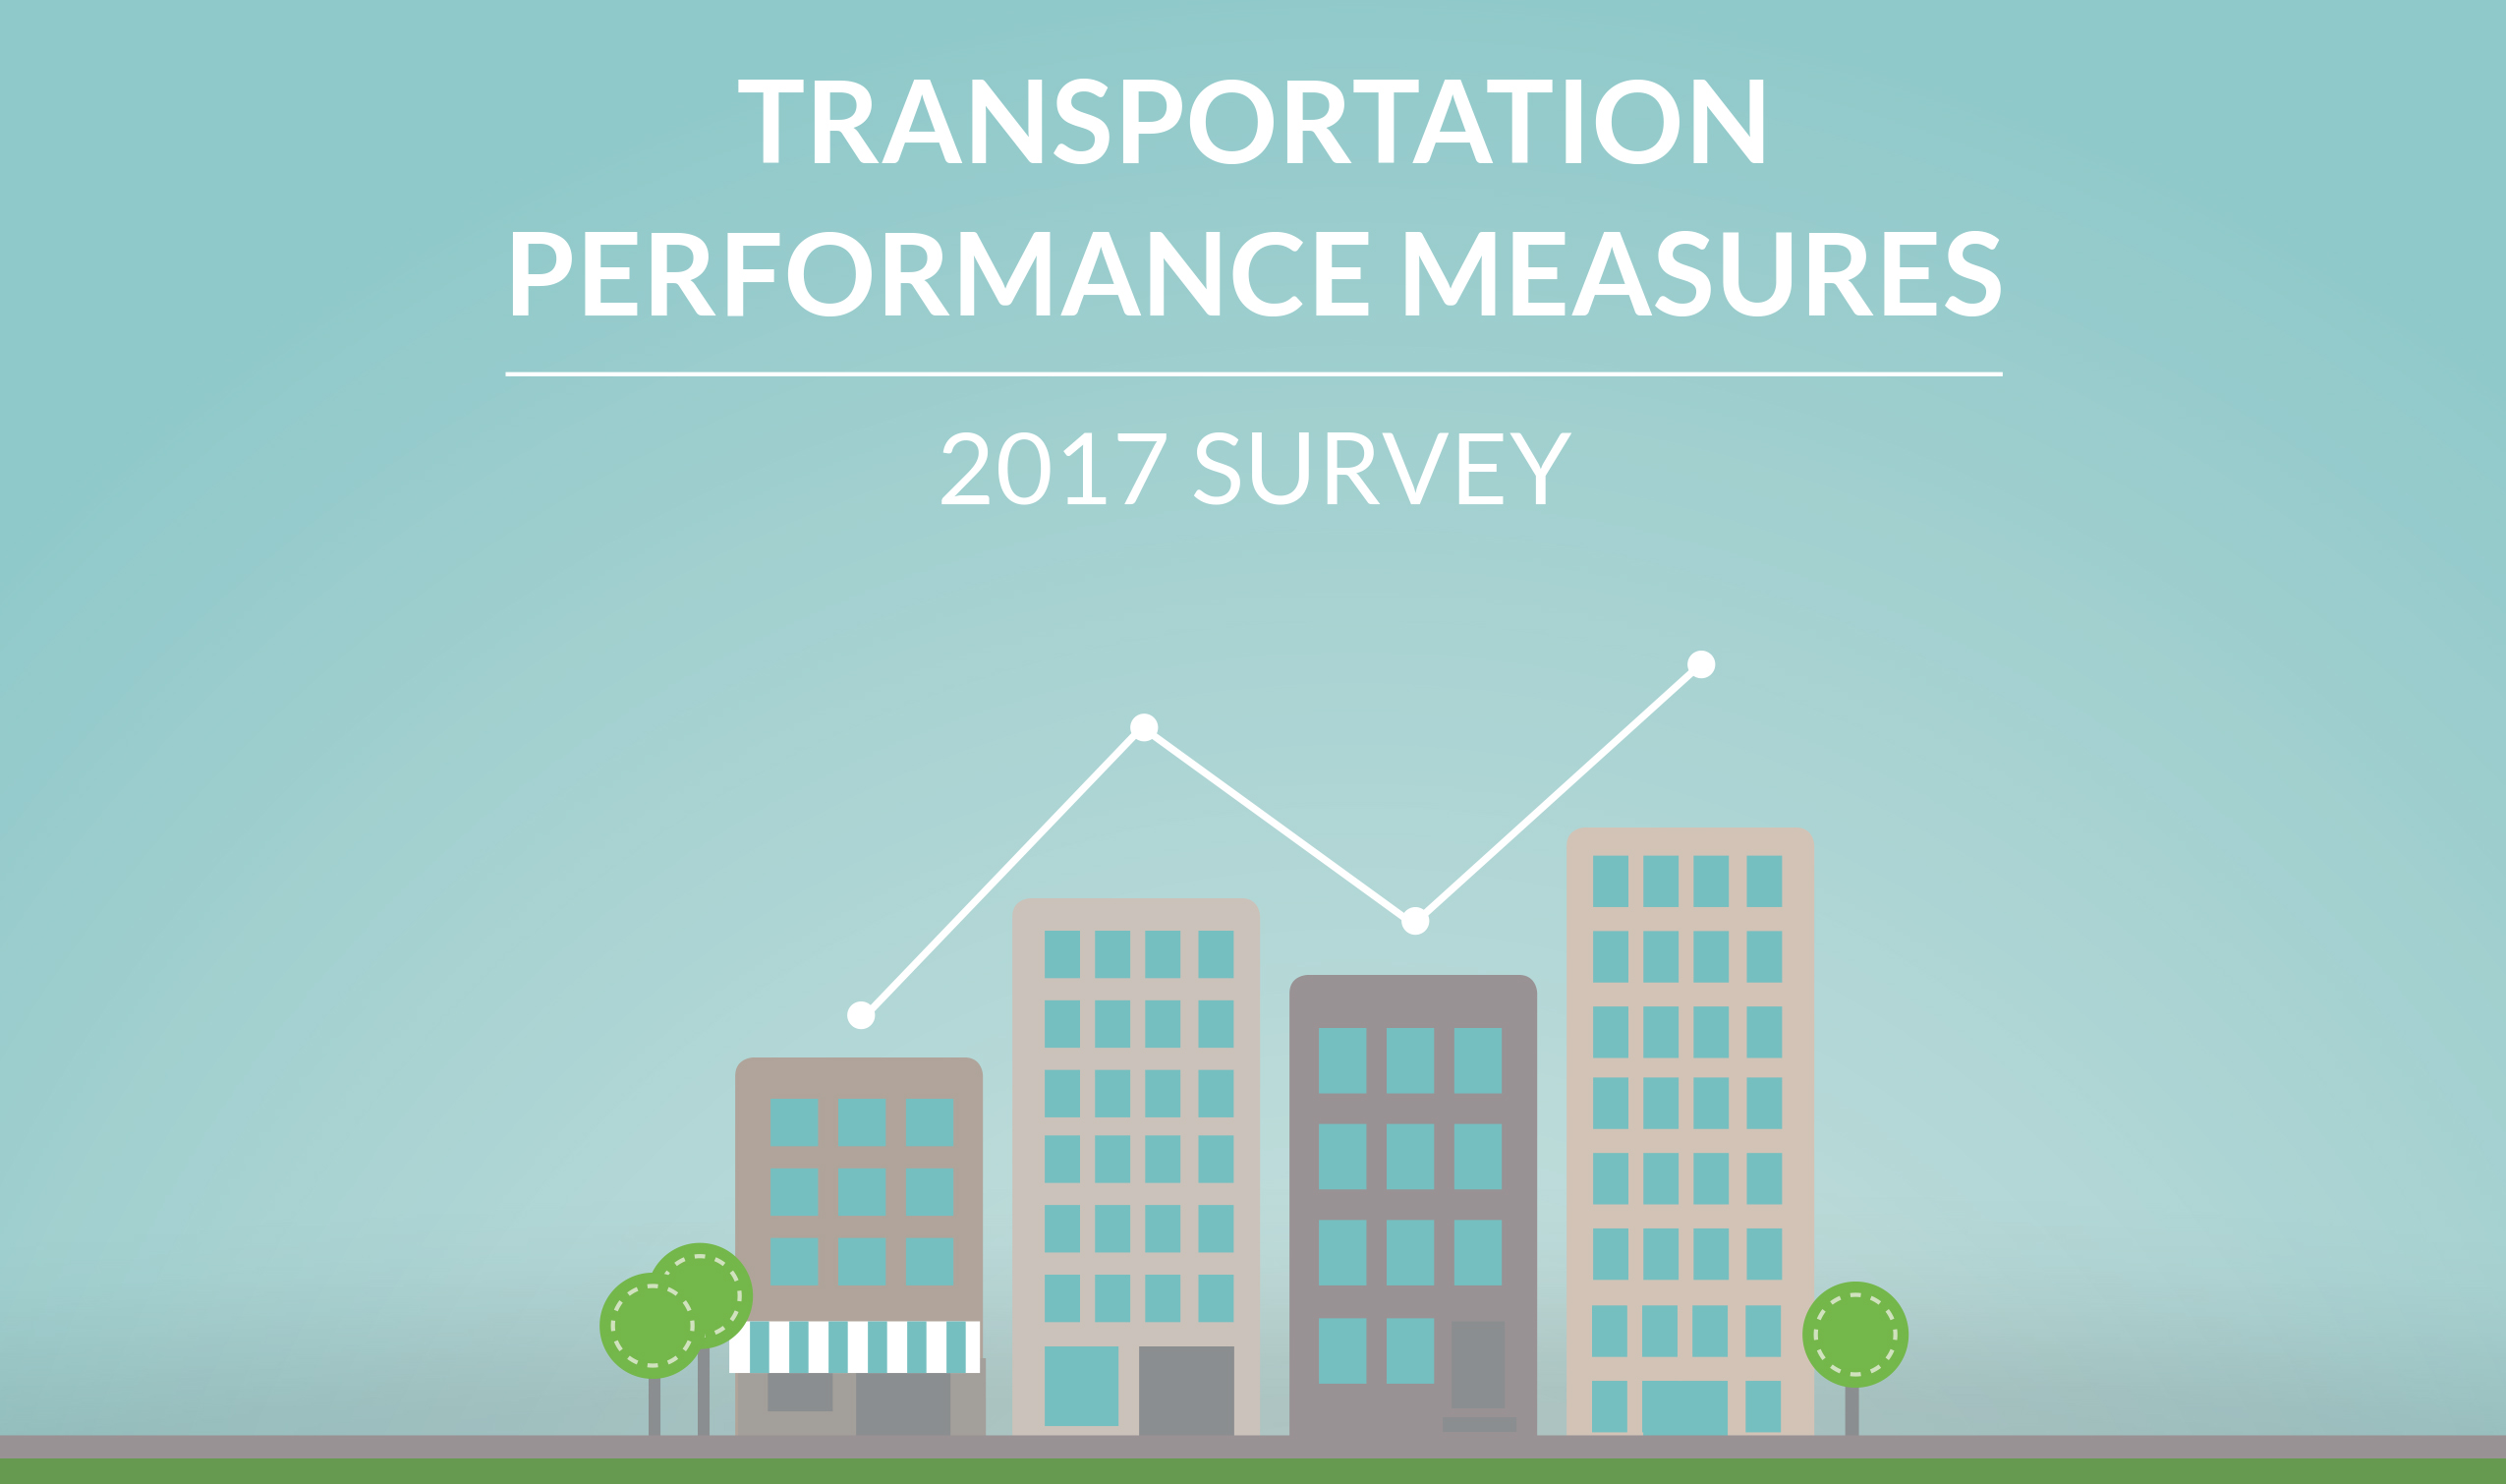 Transportation For America     MPO Survey on Performance Measures Performance measures for transportation are coming  one way or another   thanks to new federal requirements created by Congress in MAP 21